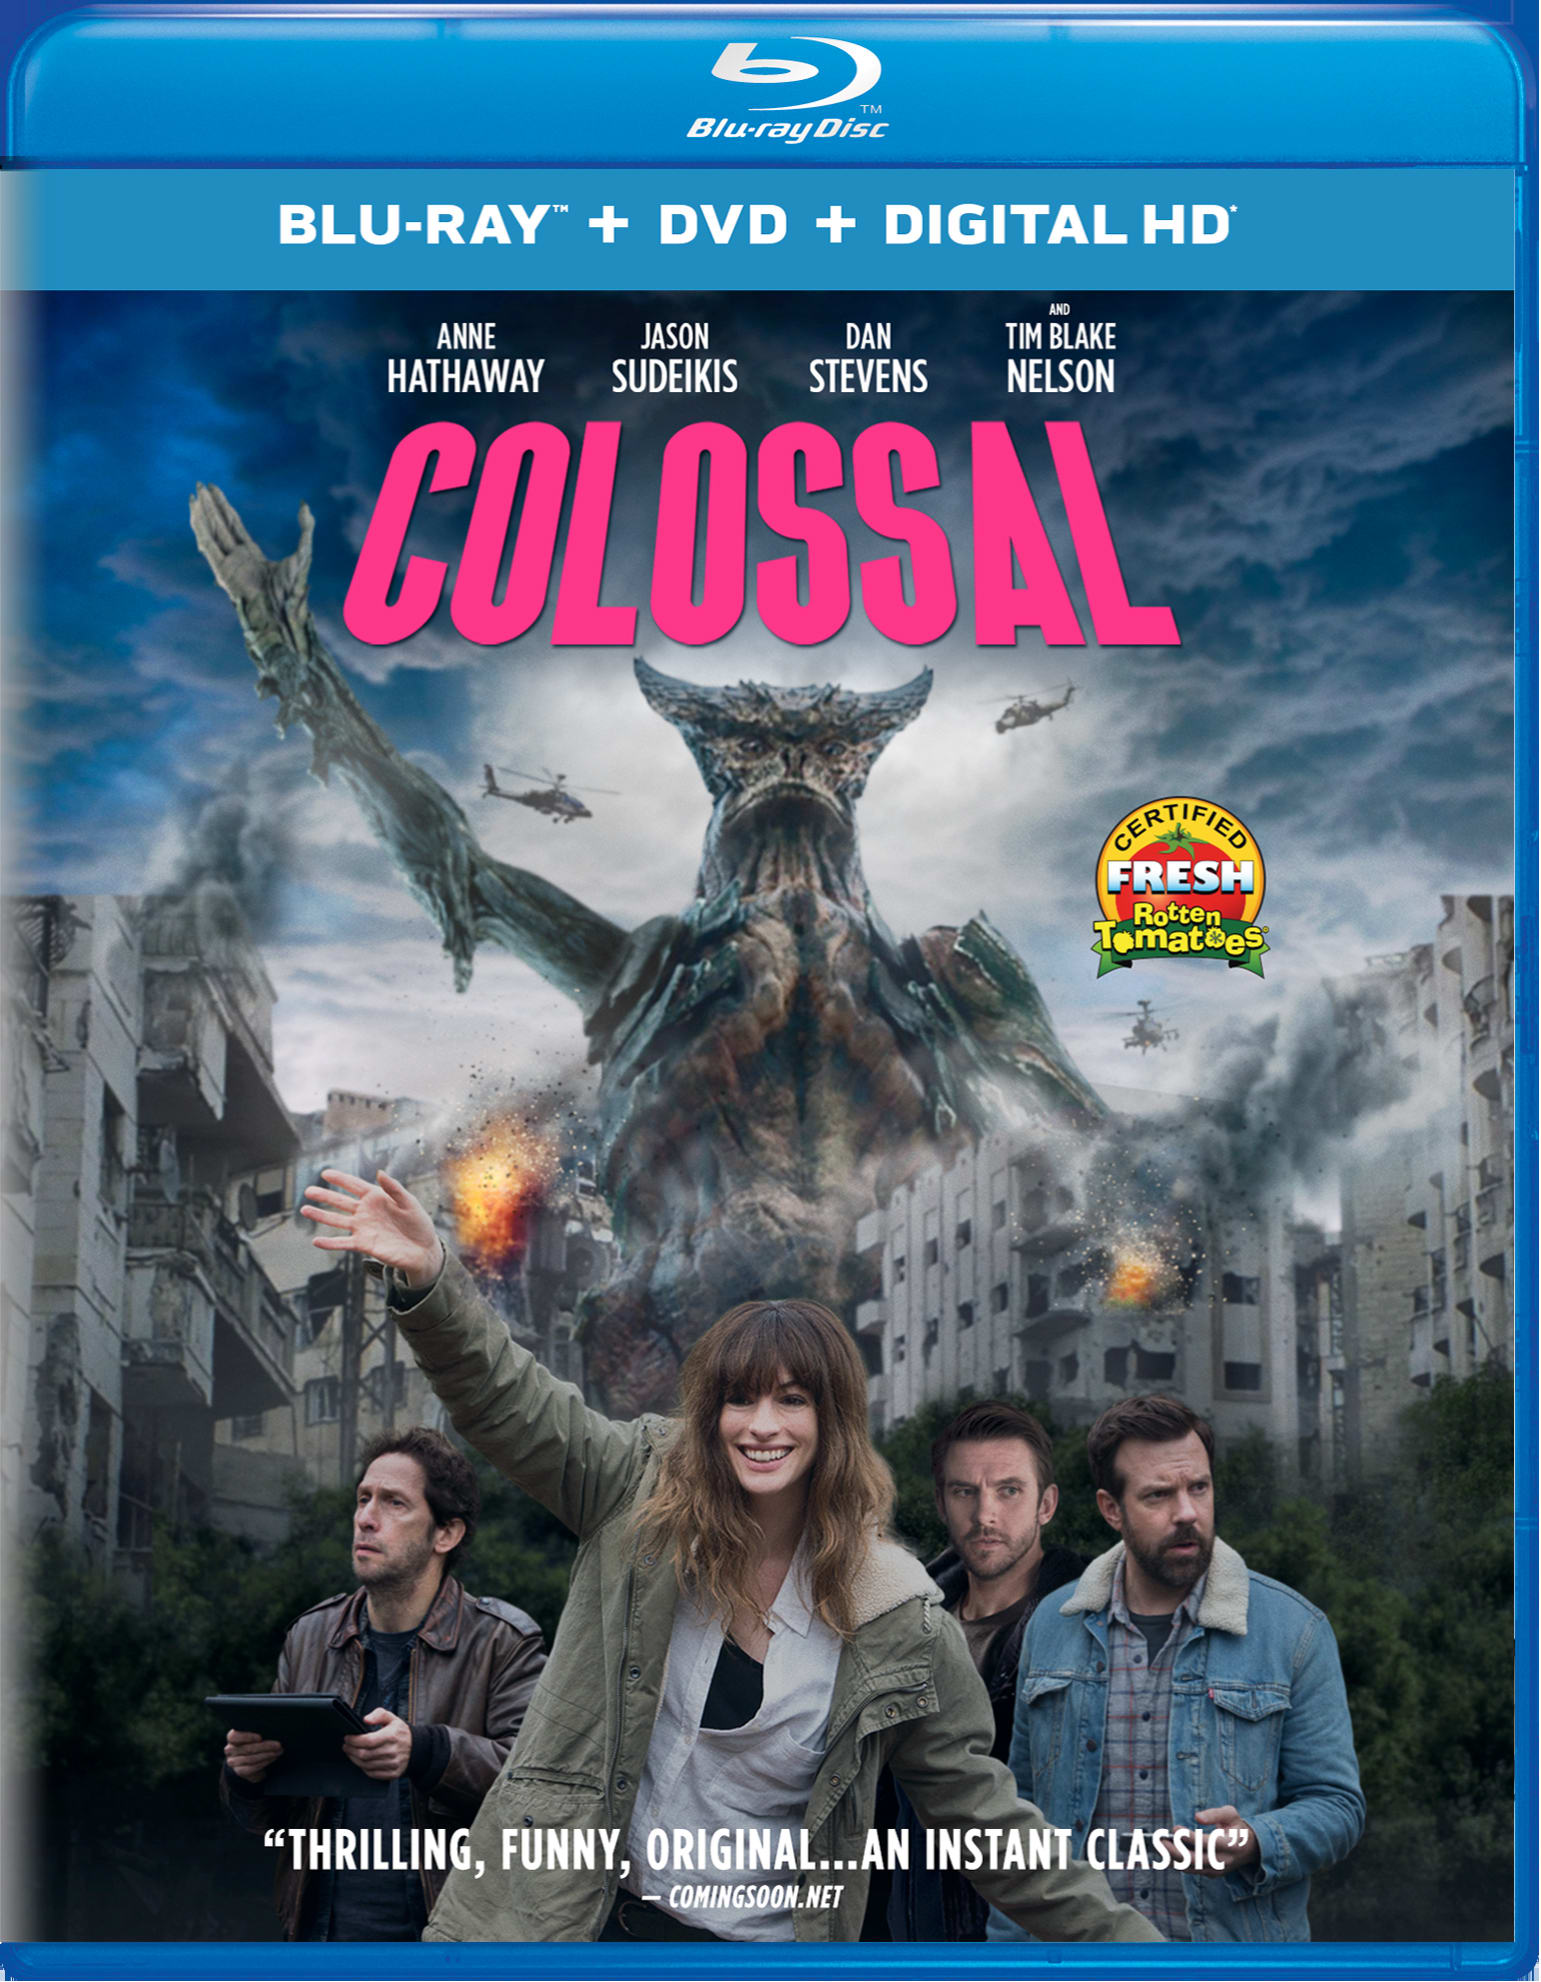 Colossal (DVD + Digital) [Blu-ray]